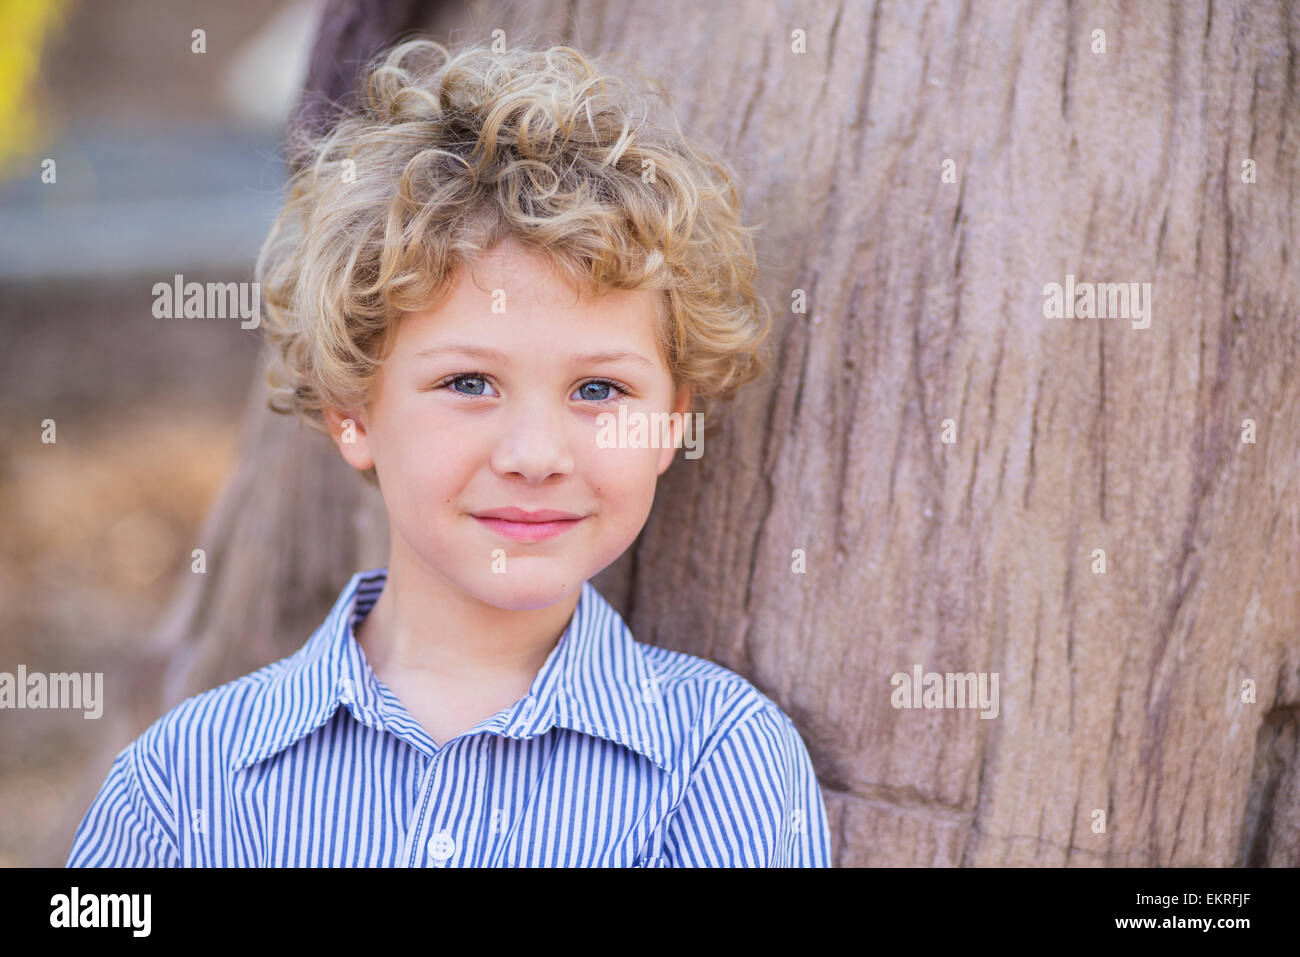 Portrait Of A Young Boy With Blond Curly Hair And Blue Eyes Stock